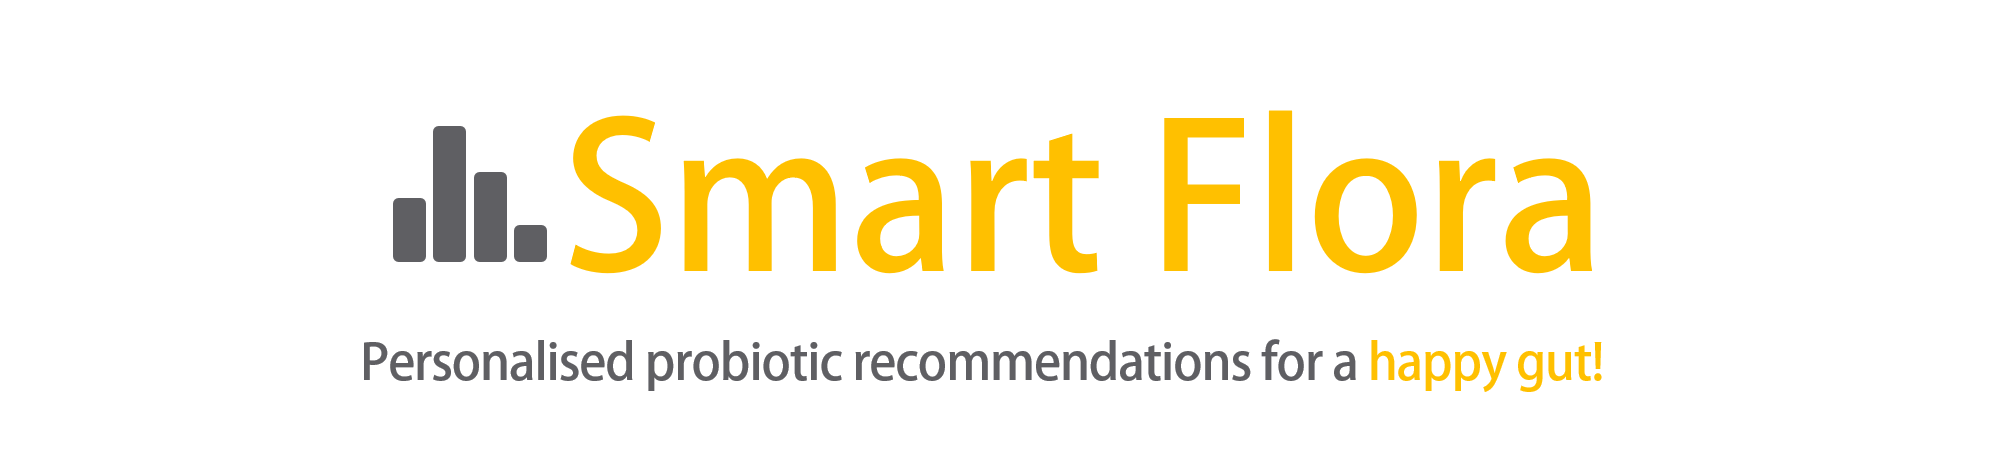 Smart Flora | Tailored probiotics for a healthy and happy gut